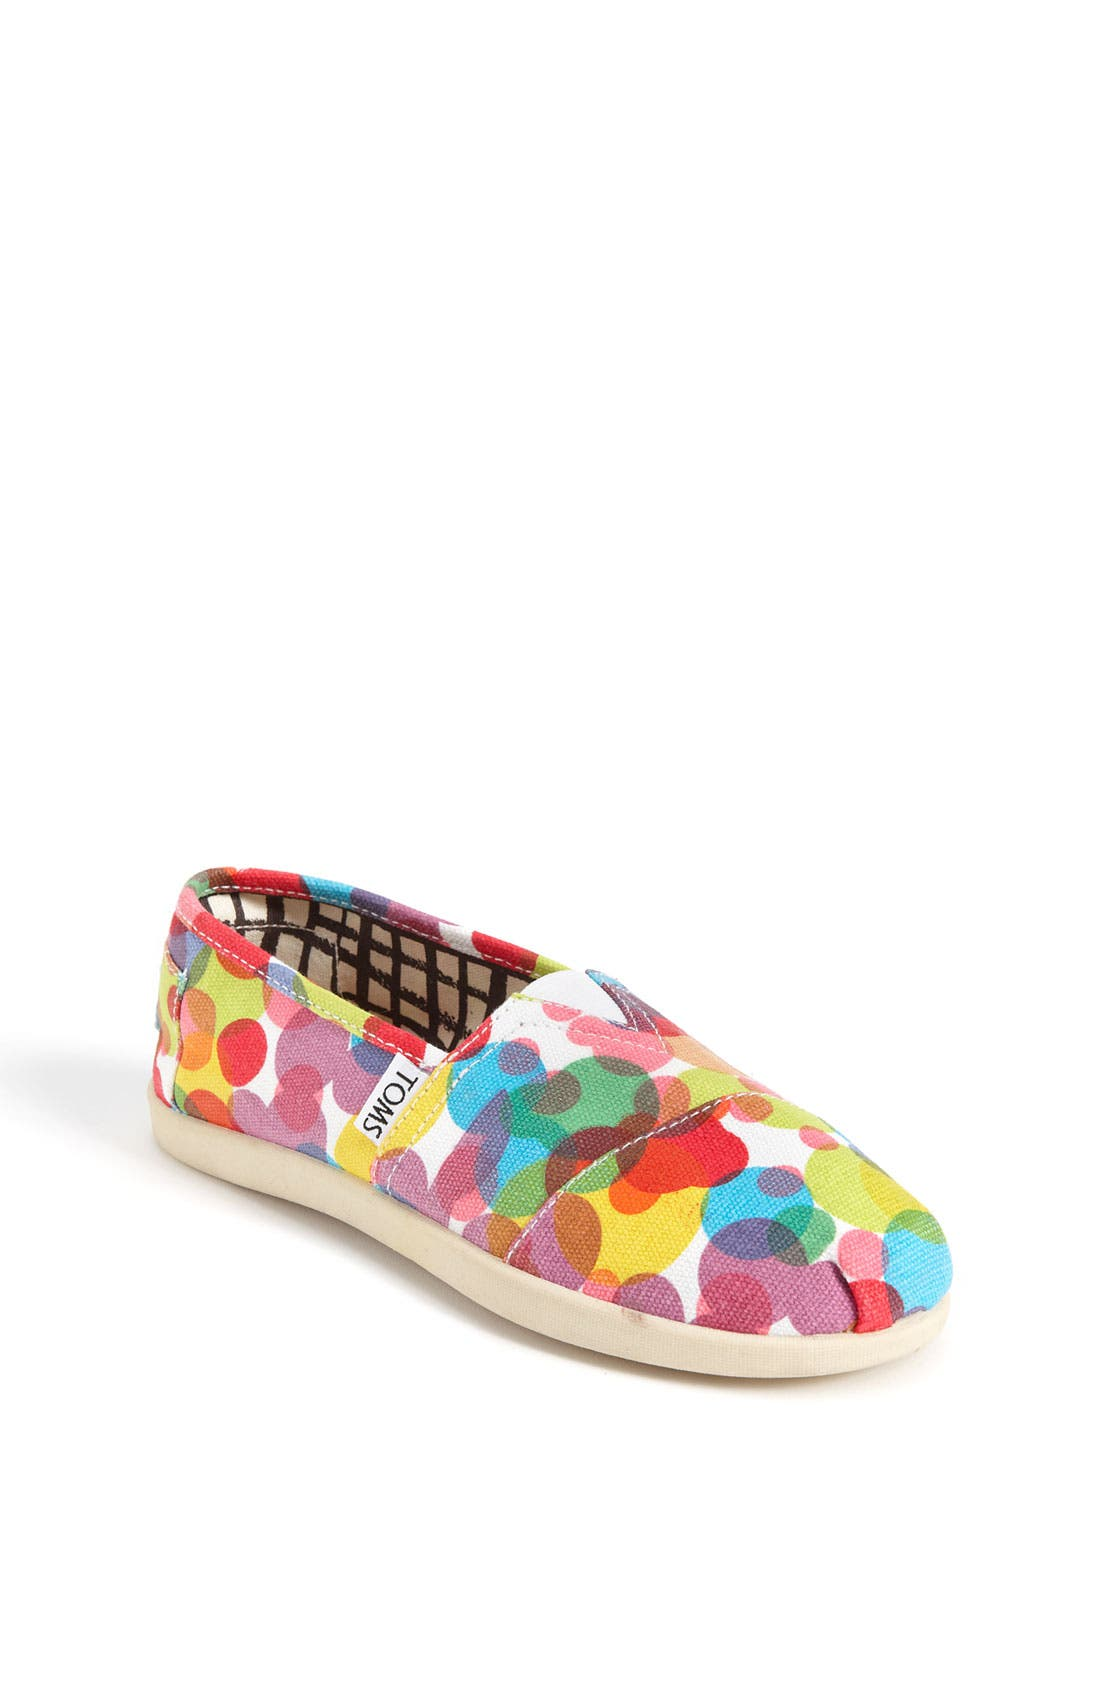 Main Image - TOMS 'Clea - Youth' Canvas Slip-On (Toddler, Little Kid & Big Kid)